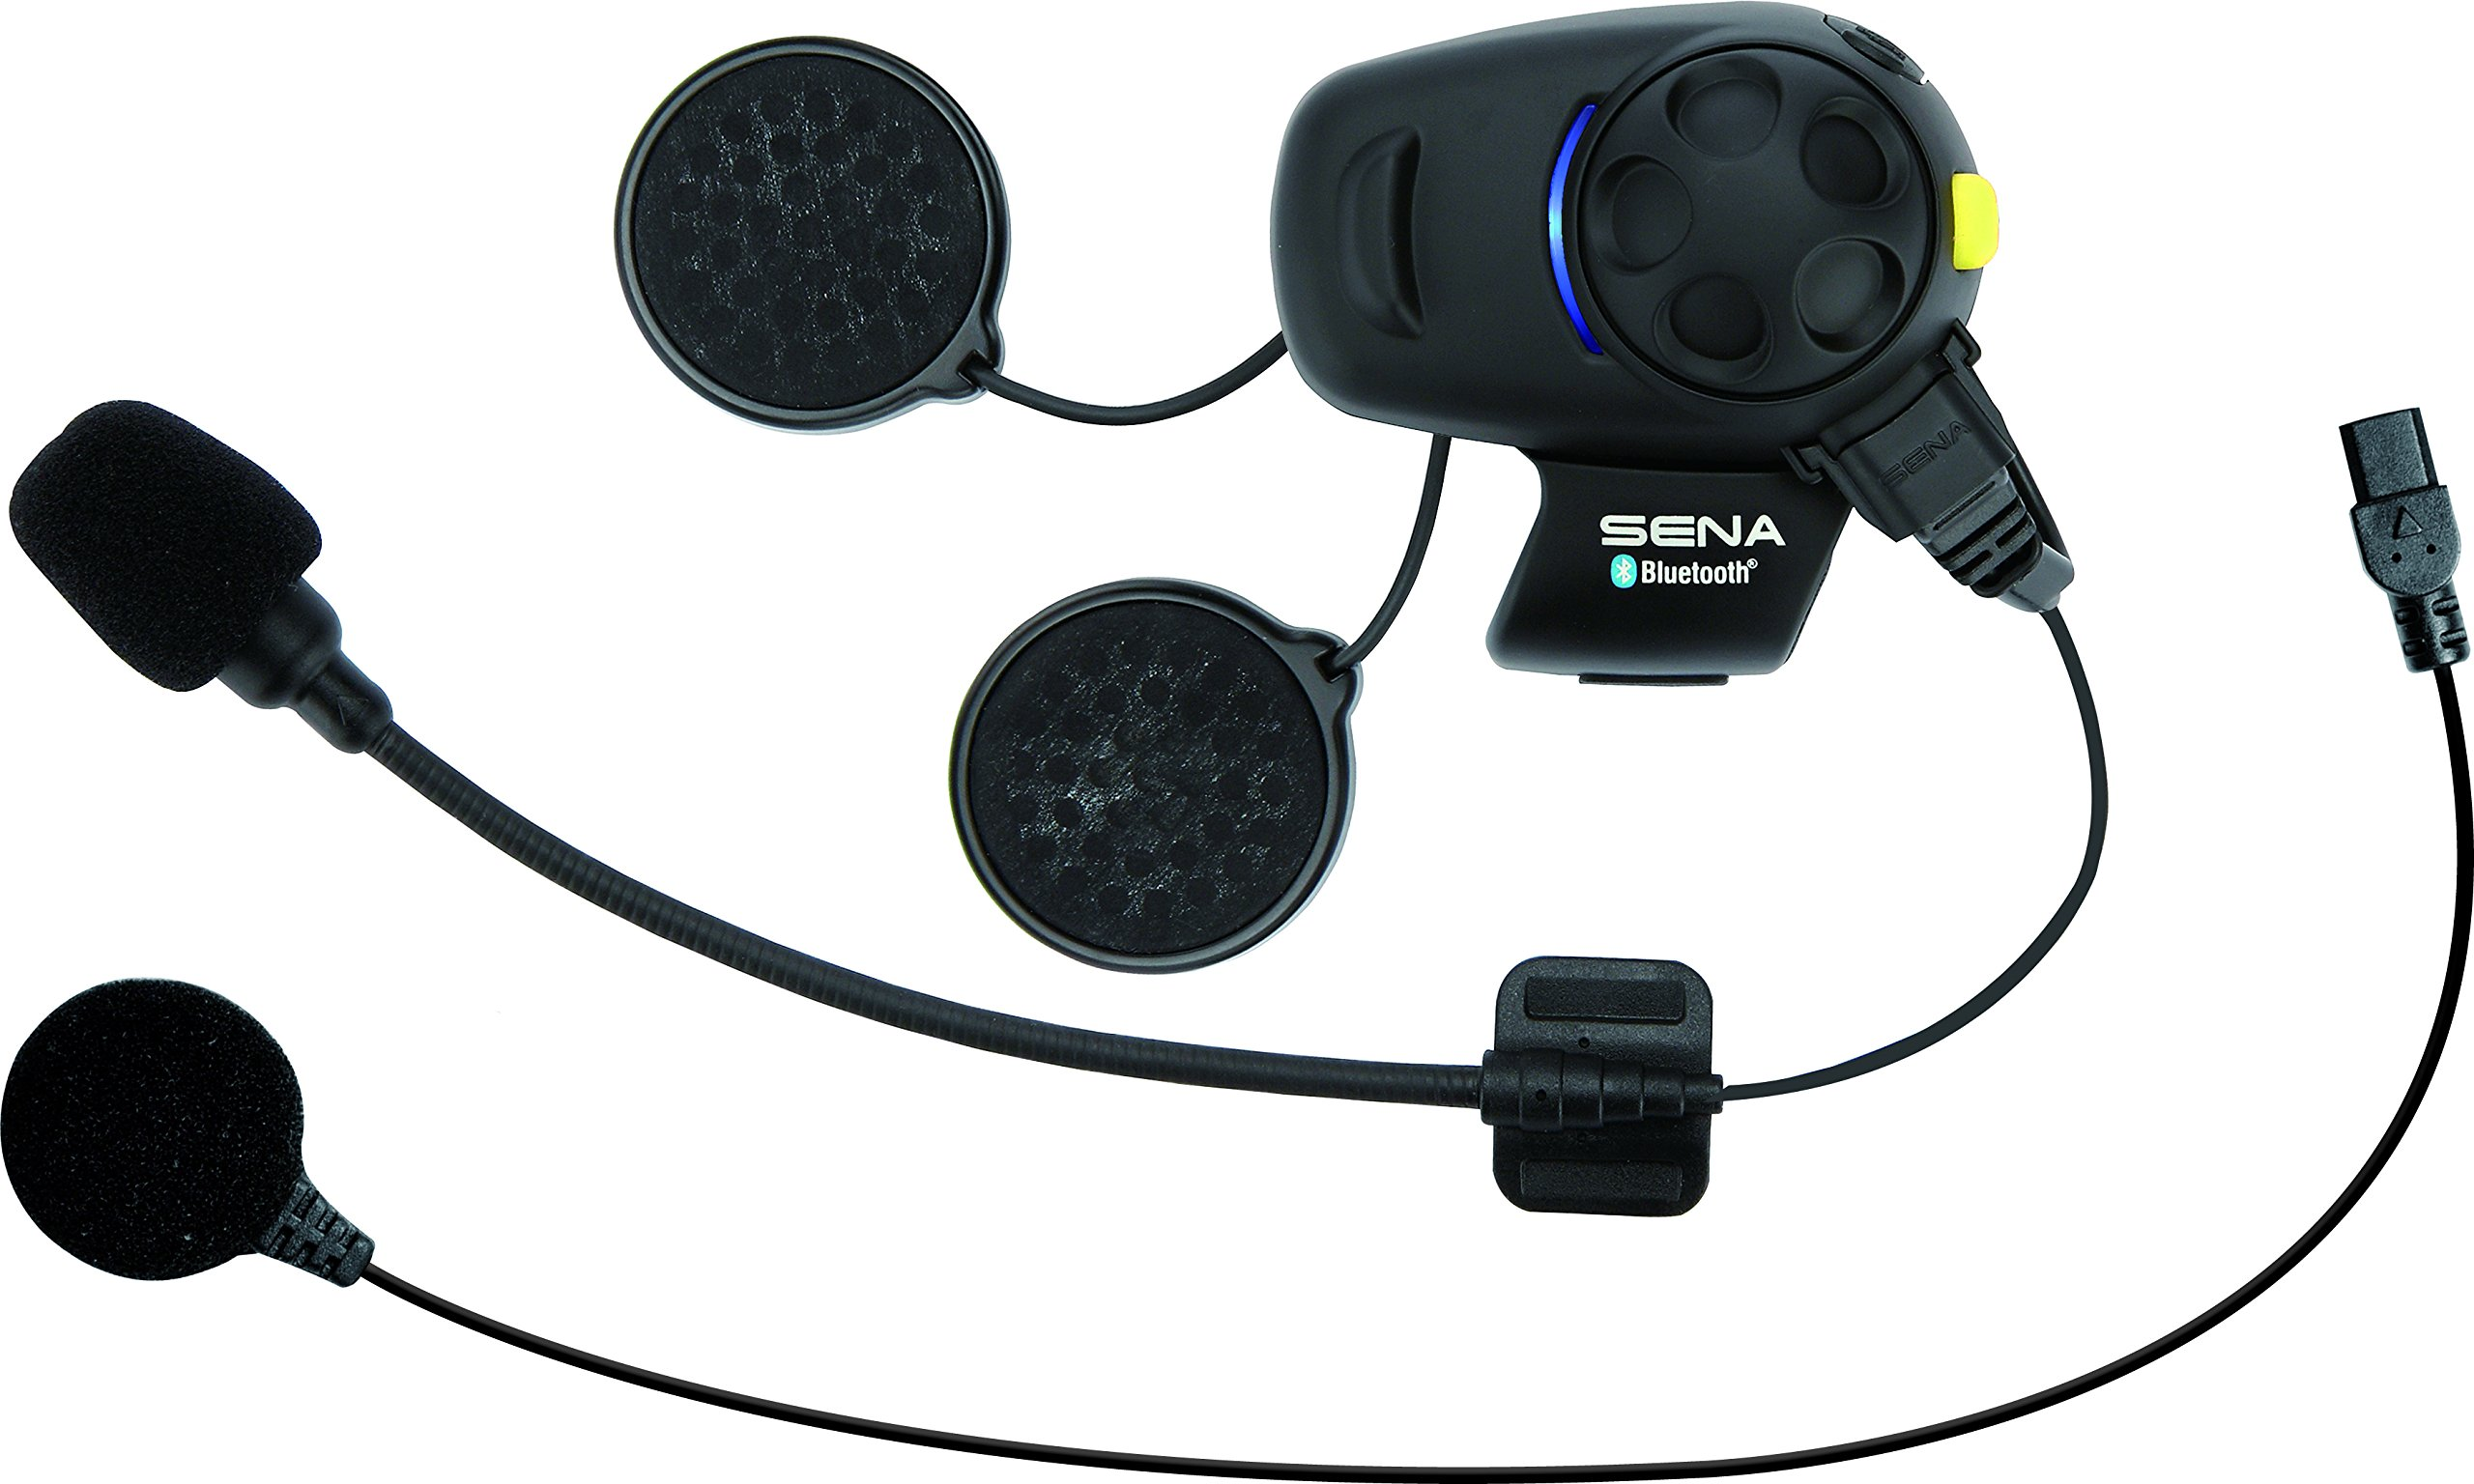 Sena Bluetooth Headset and Intercom with Built-In FM Tuner for Scooters/Motorcycles with Universal Microphone Kit